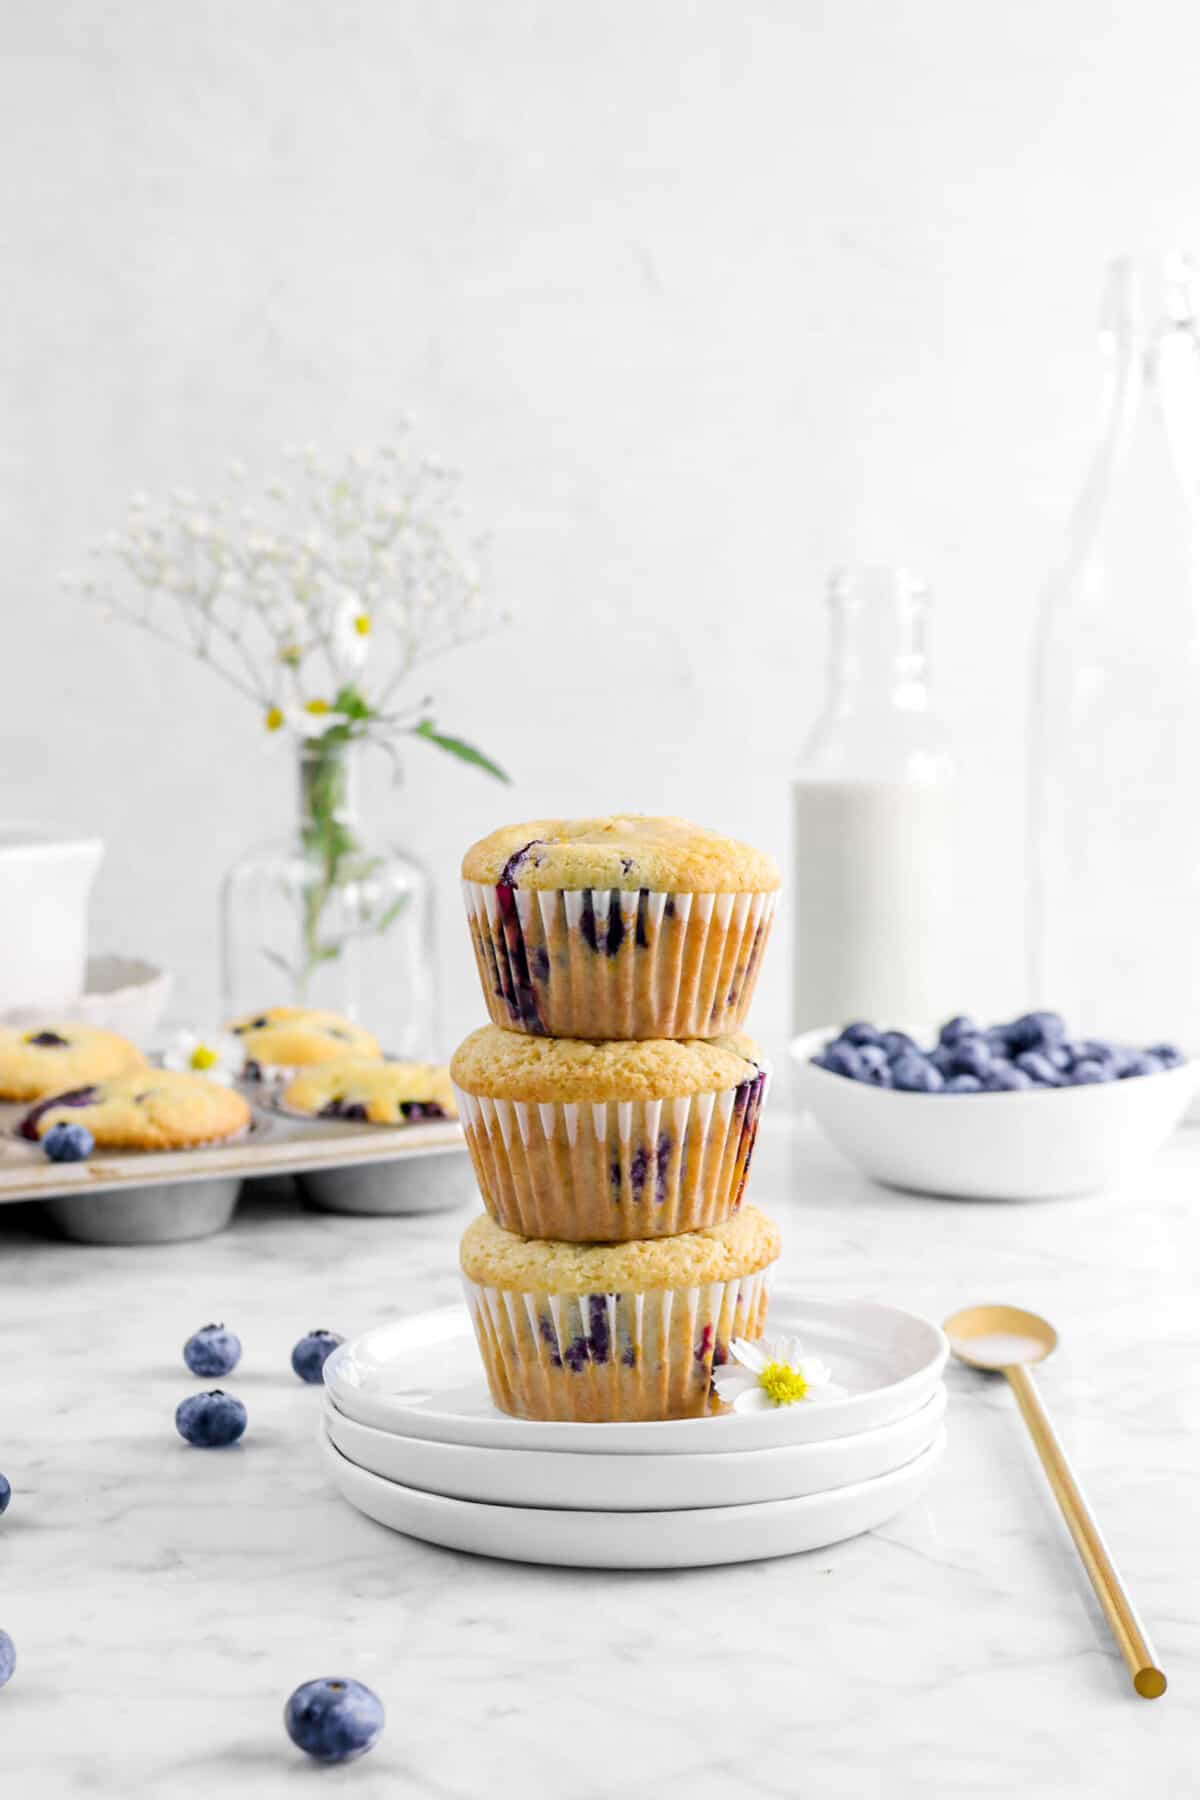 three stacked blueberries with pan of blueberry muffins behind, fresh blueberries, flowers, and gold spoon